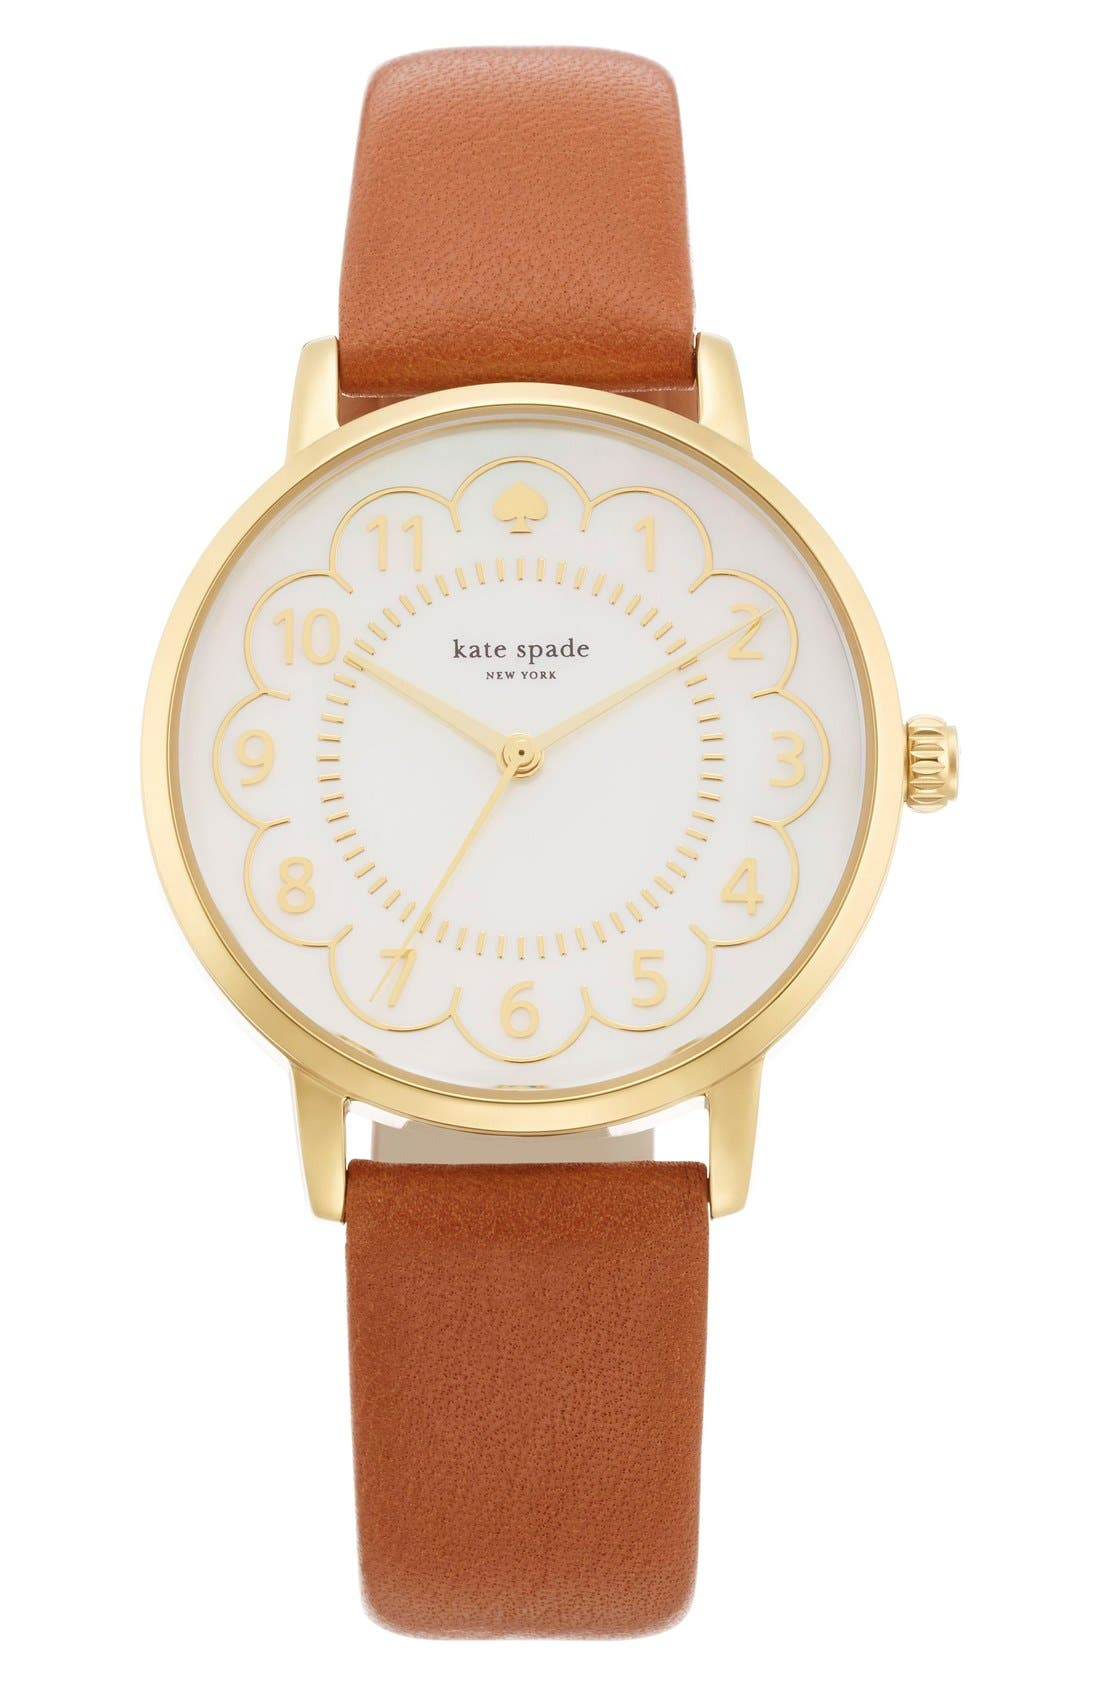 Main Image - kate spade new york 'metro' scalloped dial leather strap watch, 34mm